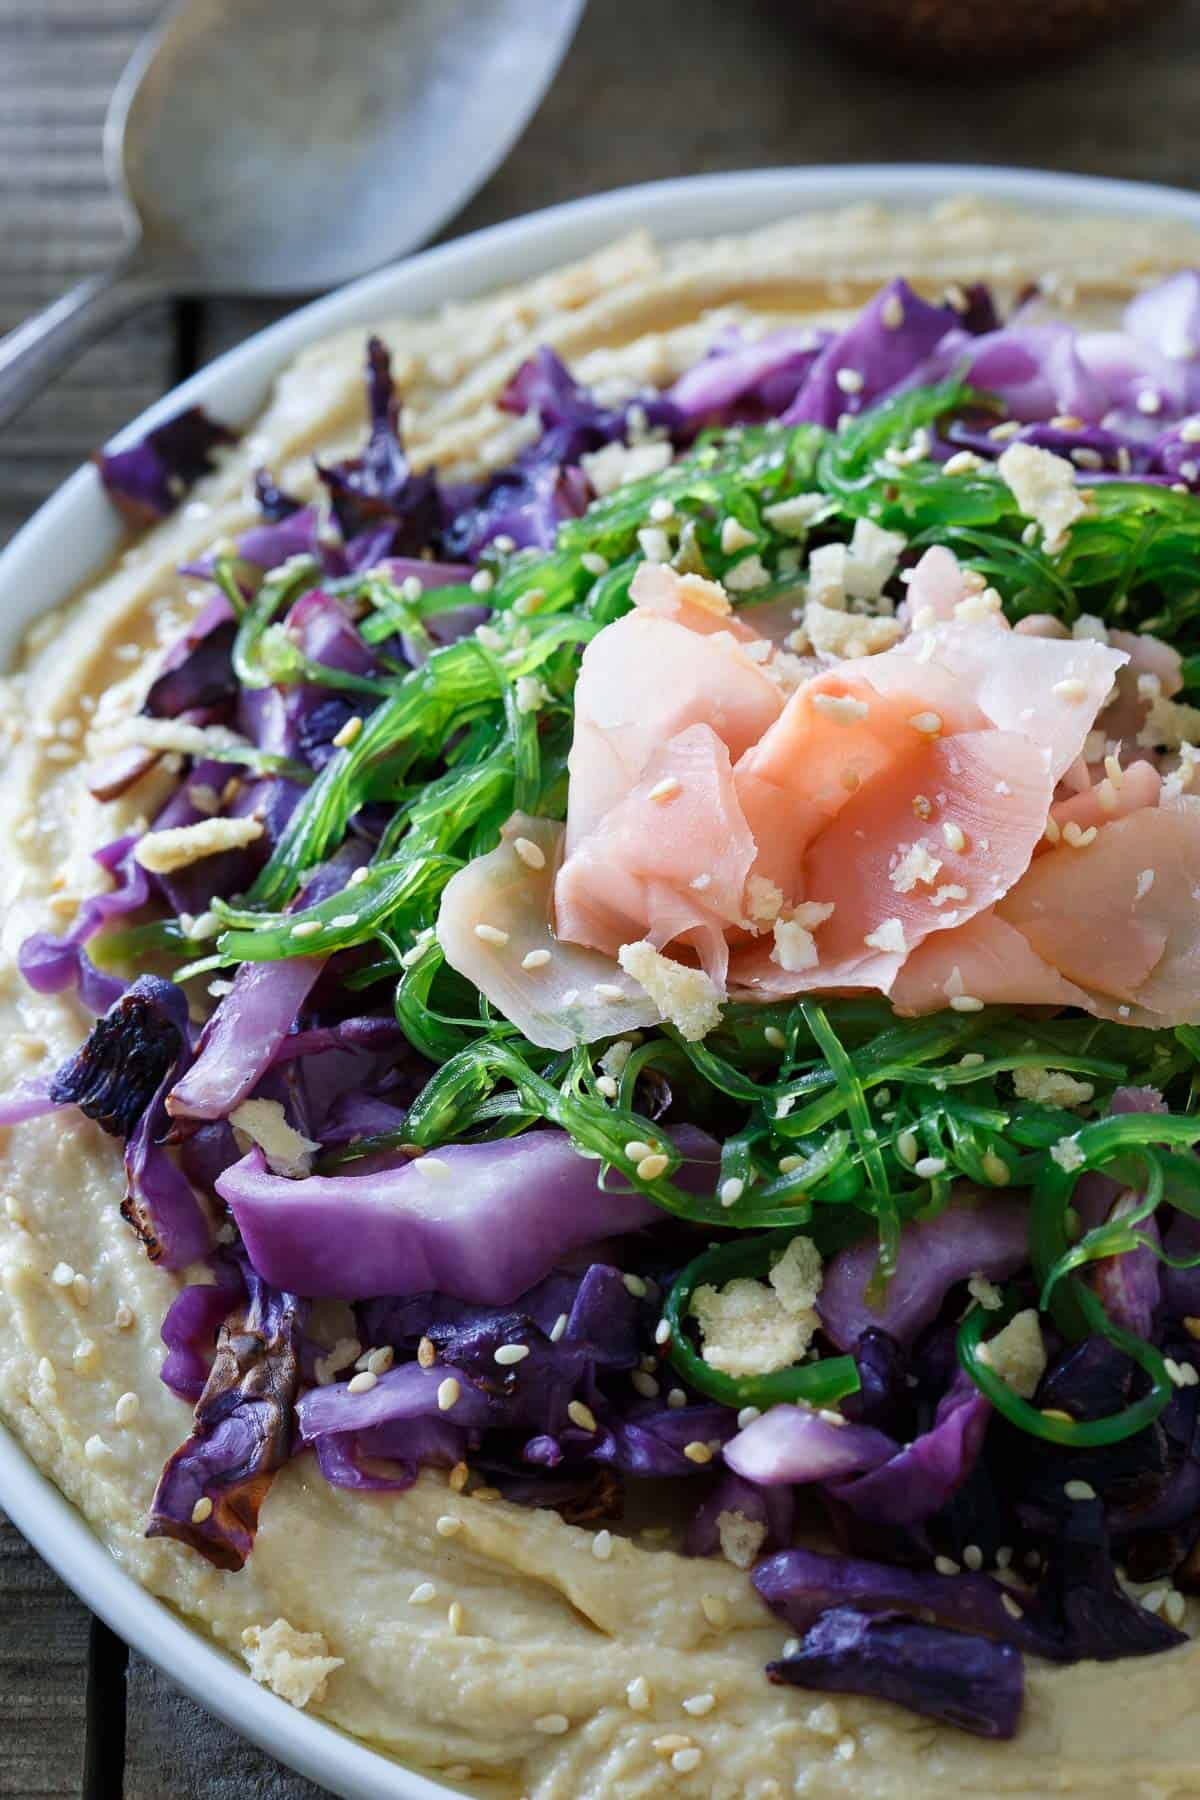 Sesame cabbage, seaweed salad and pickled ginger are piled high in this Asian hummus platter.